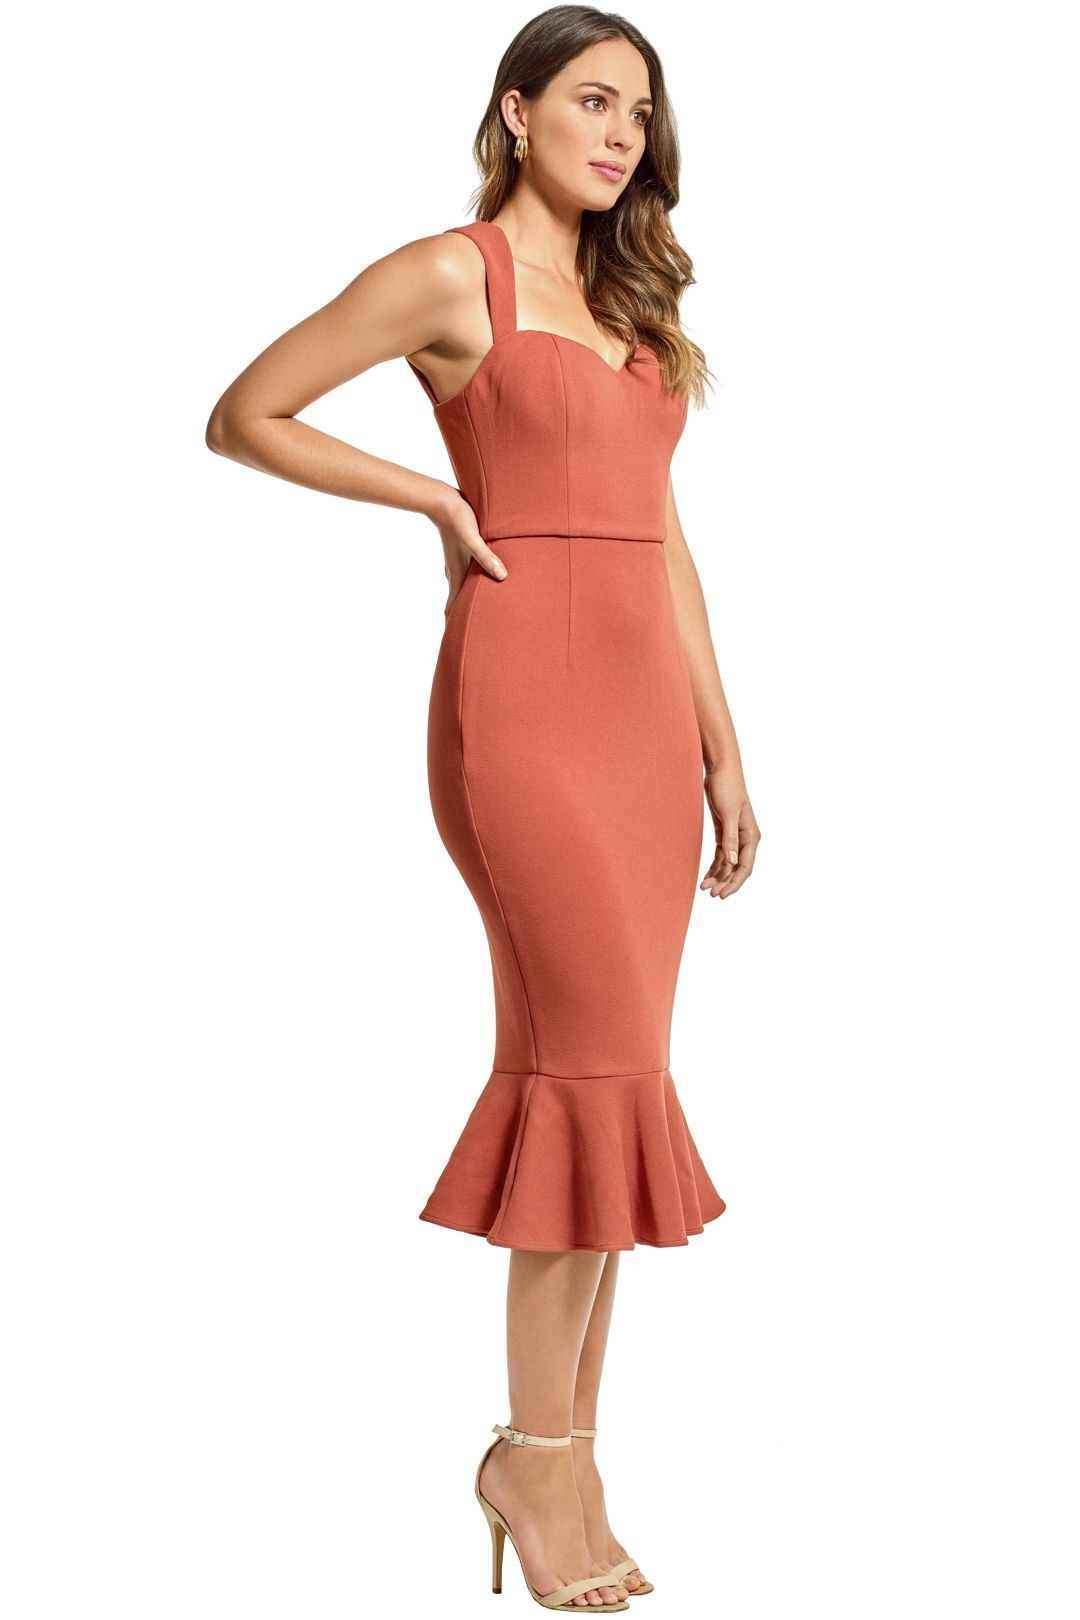 Grace and Hart - Aviary Midi Dress - Copper - Side